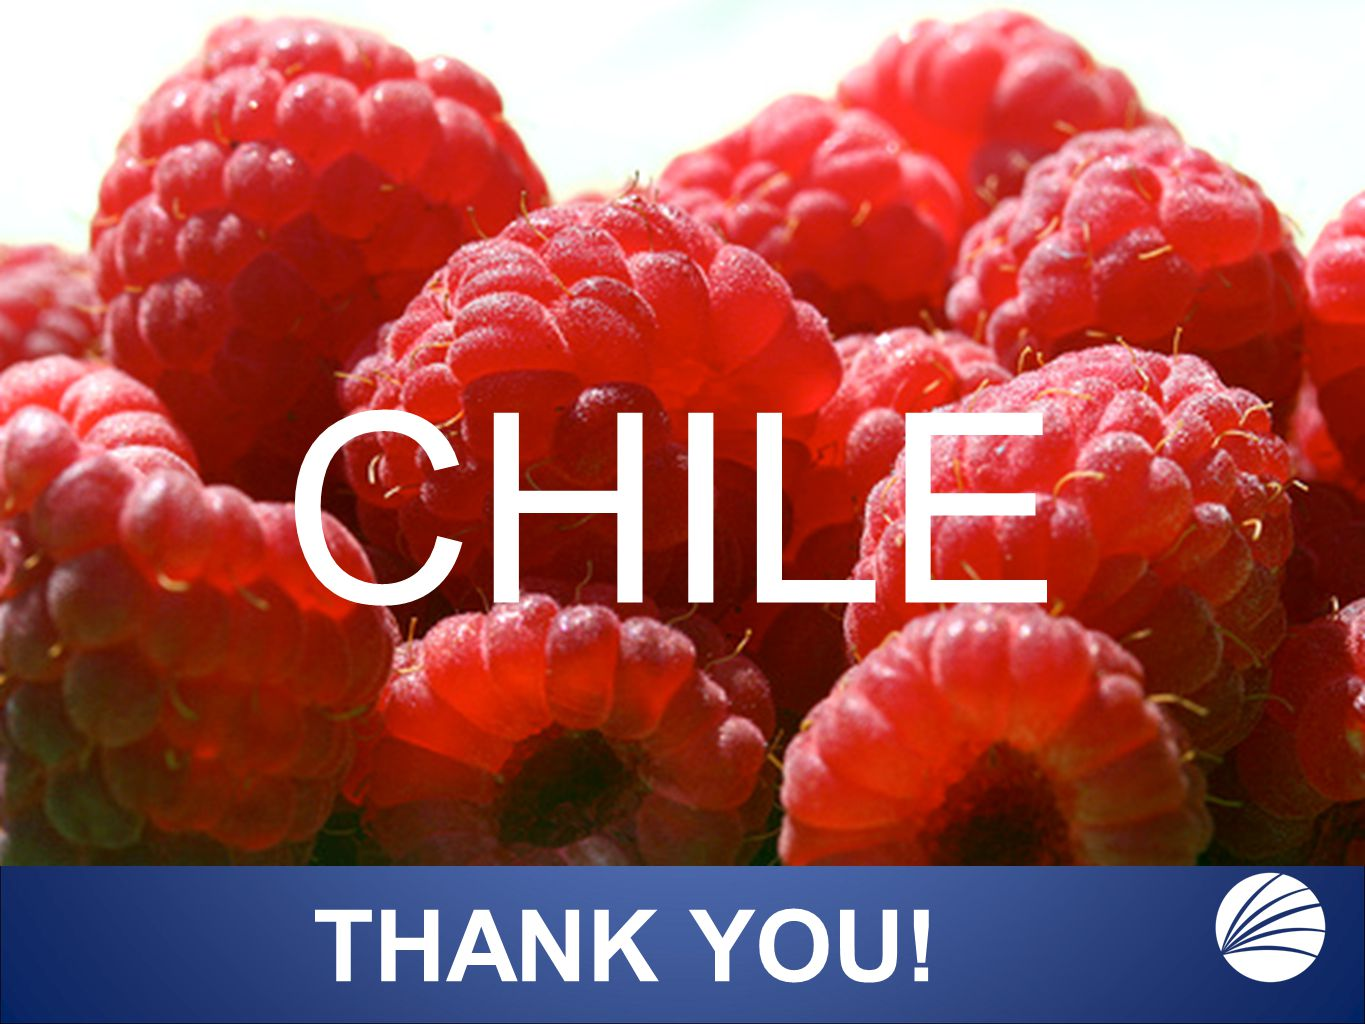 THANK YOU! CHILE